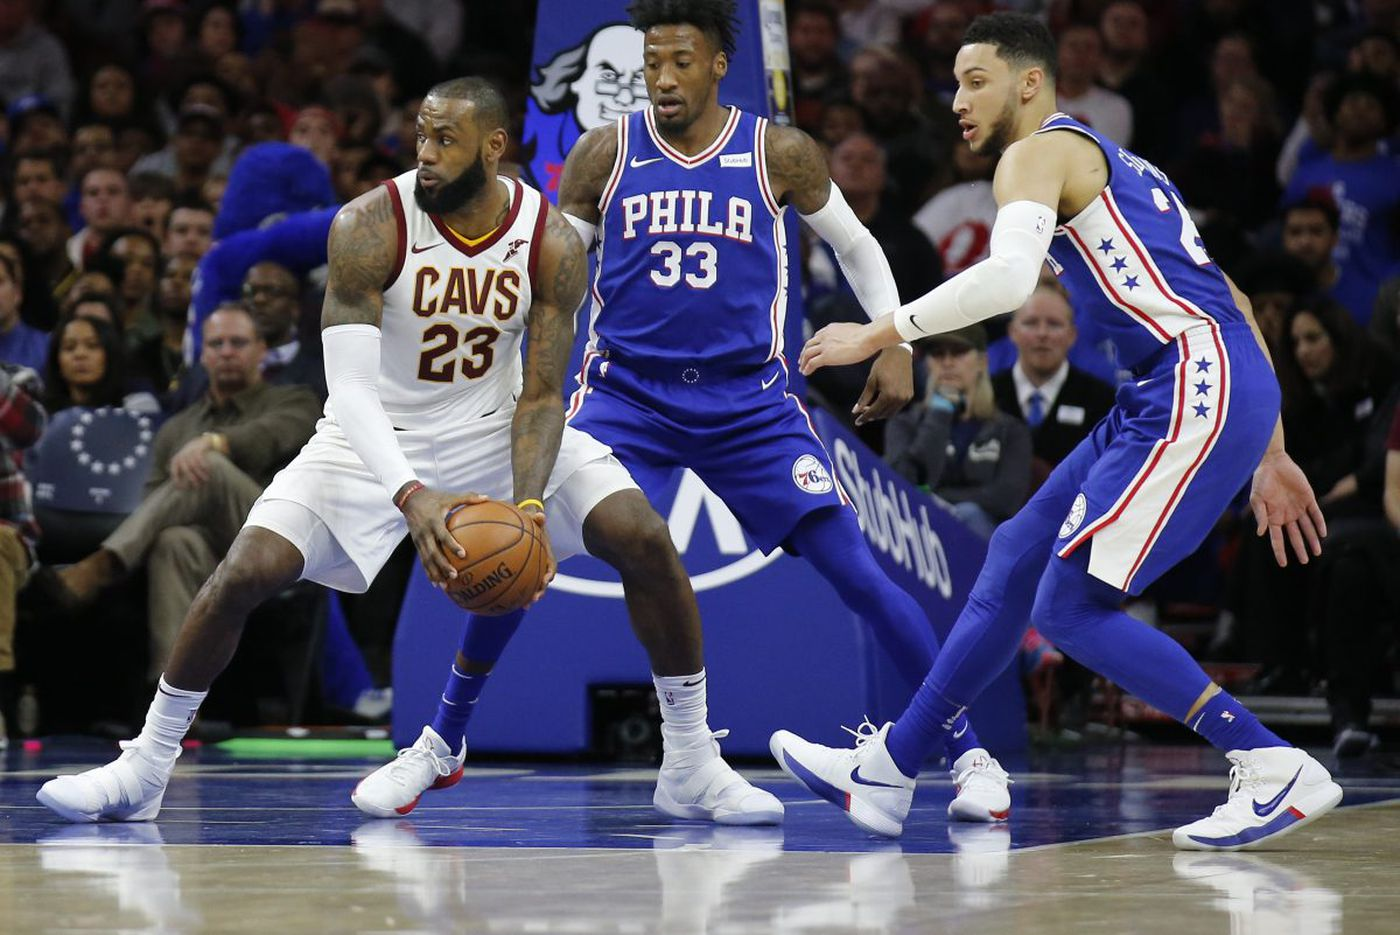 Sixers-Cavaliers preview: Brett Brown's squad eyes move up in NBA playoff race